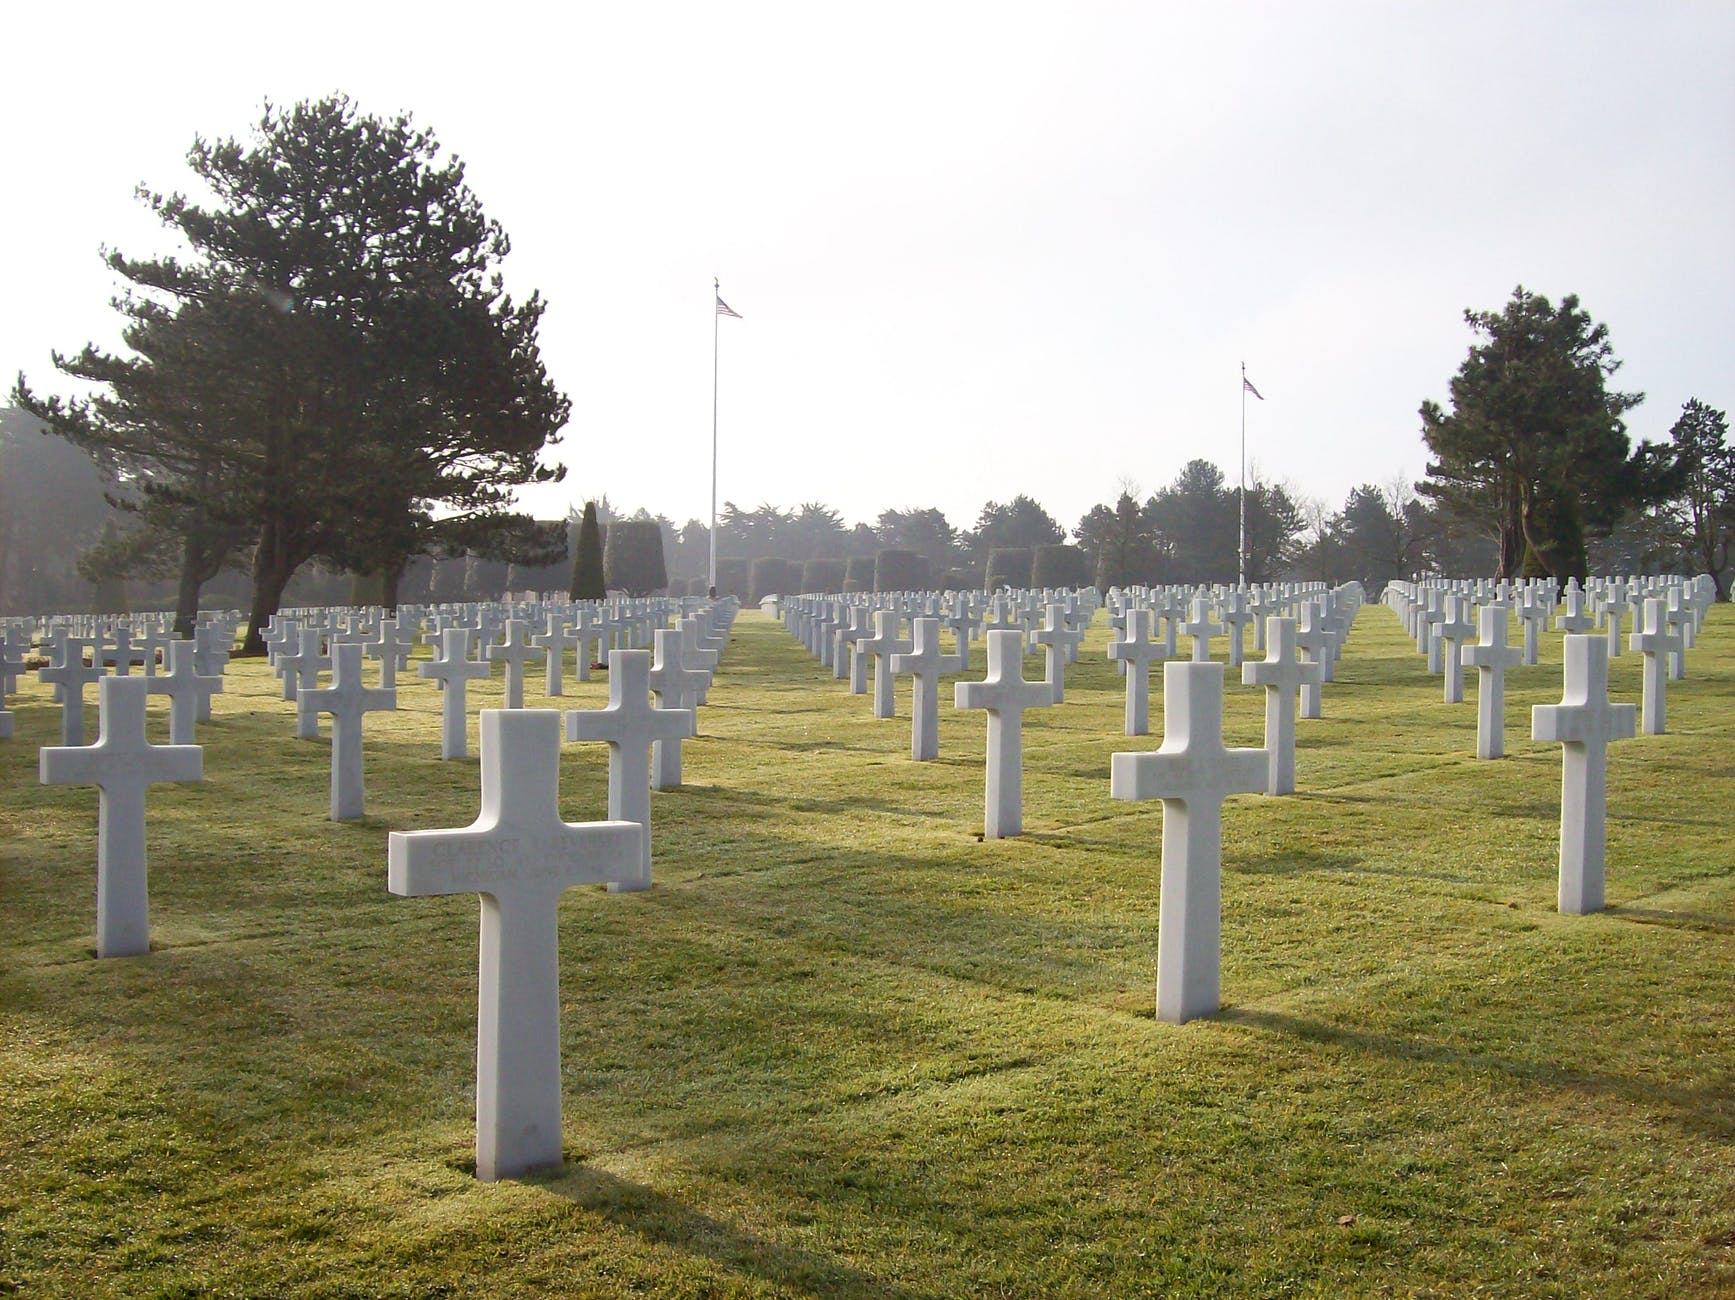 cemetery of fallen soldiers and veterans